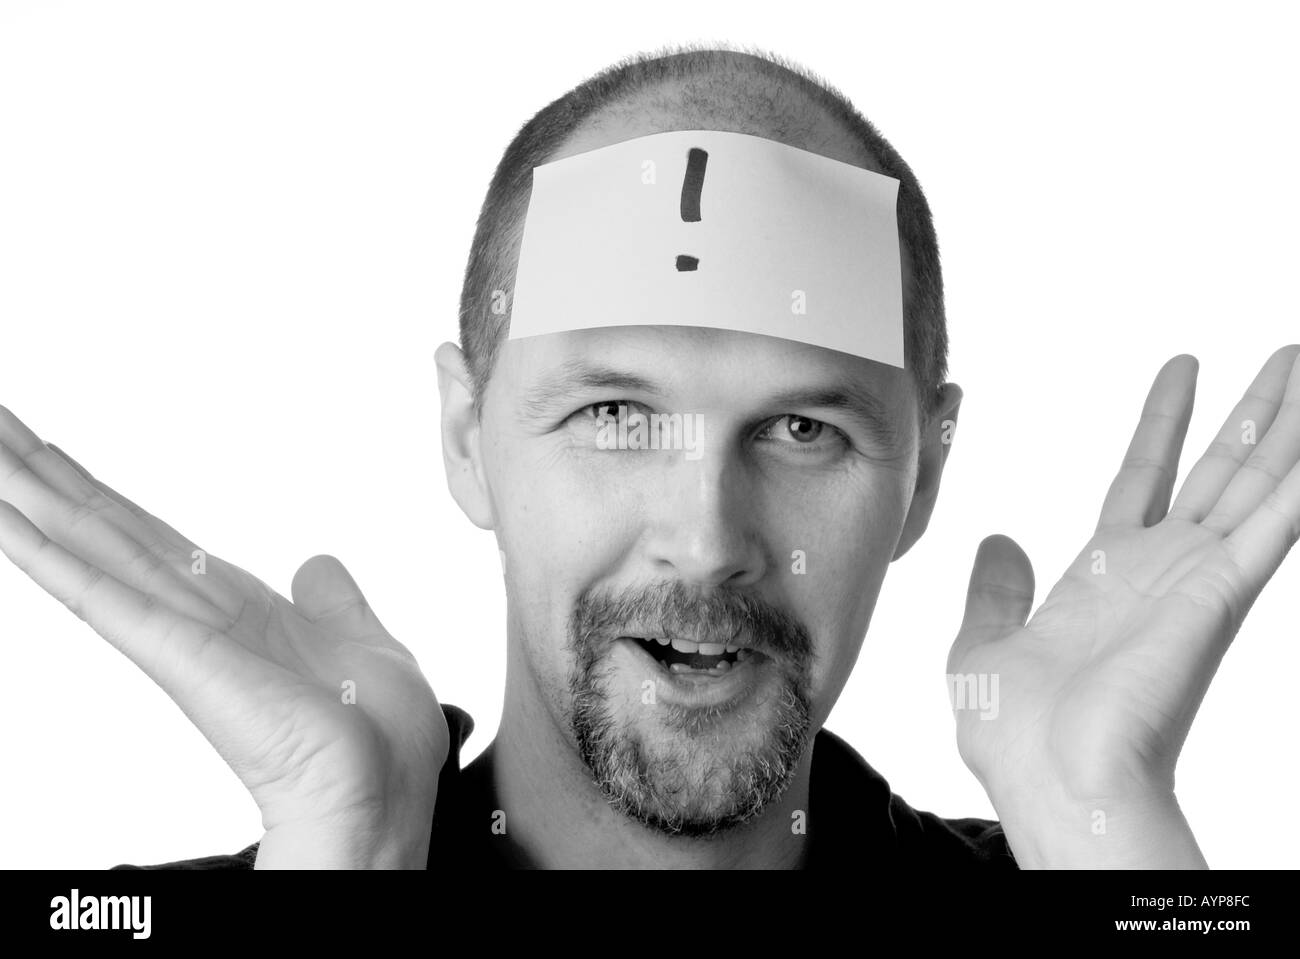 man with post it note on head looking having an idea blue sky thought eureka bingo exlamation mark what hands thrown up in dis - Stock Image